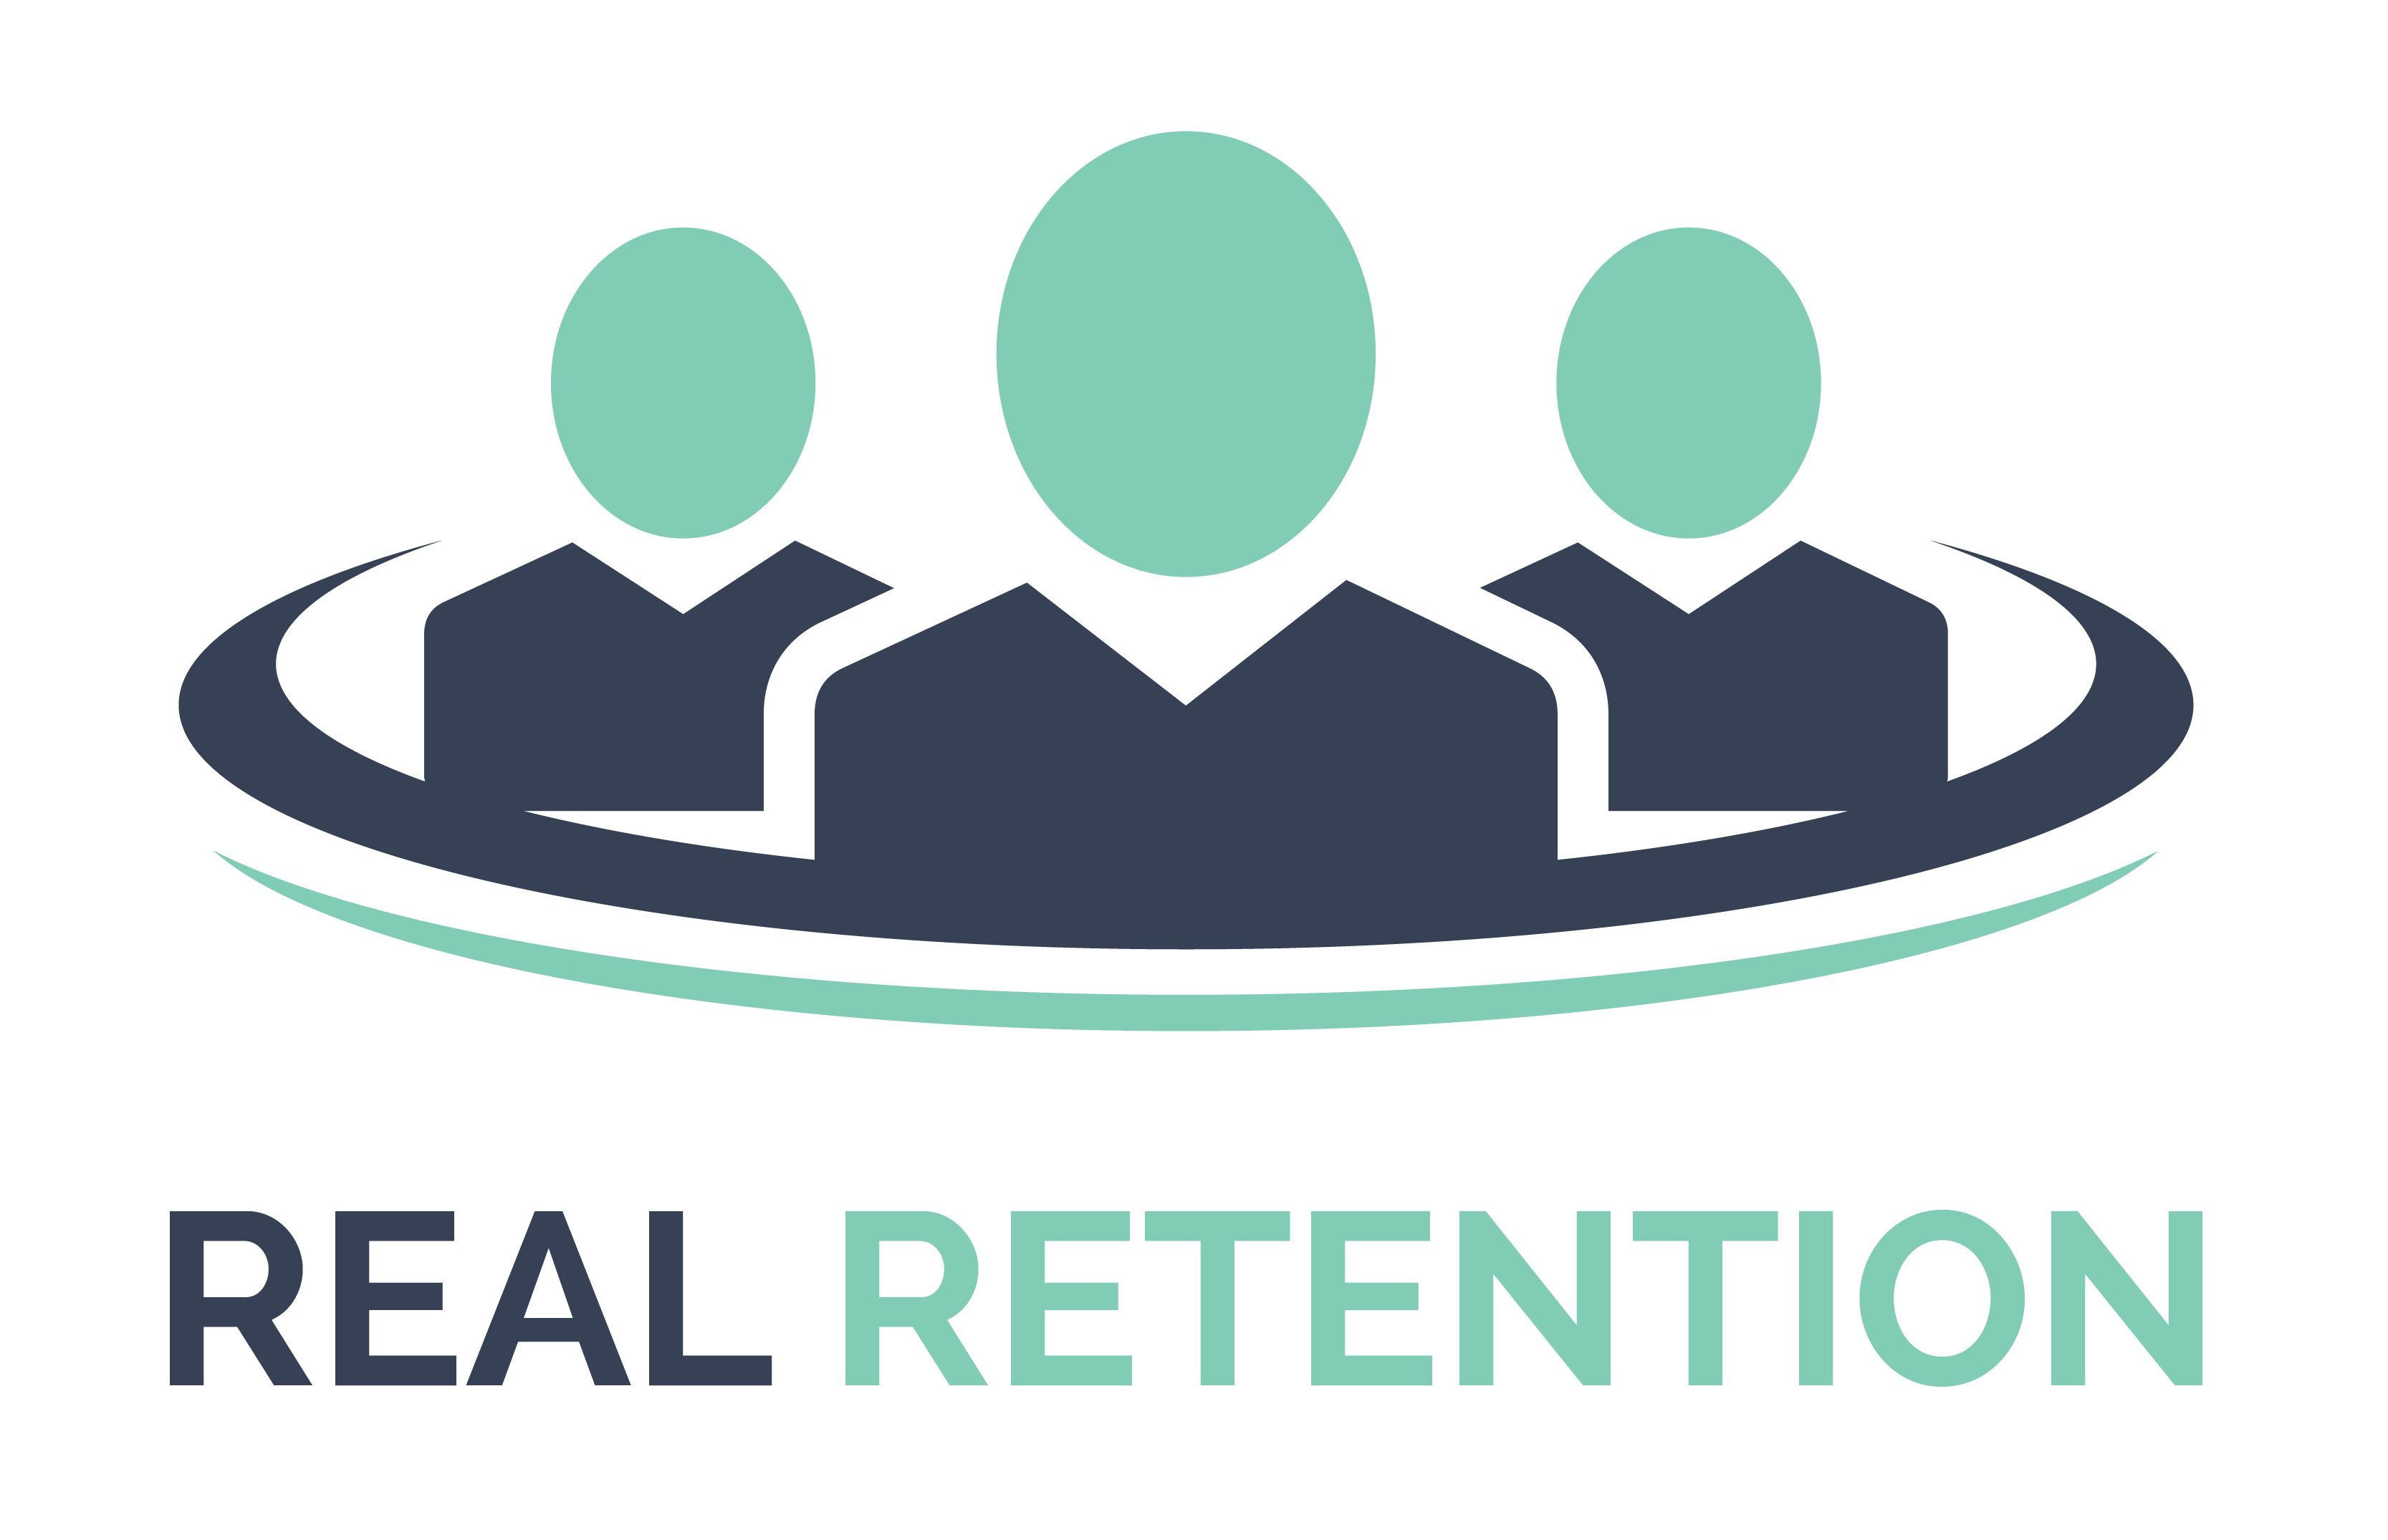 Real Retention Logo